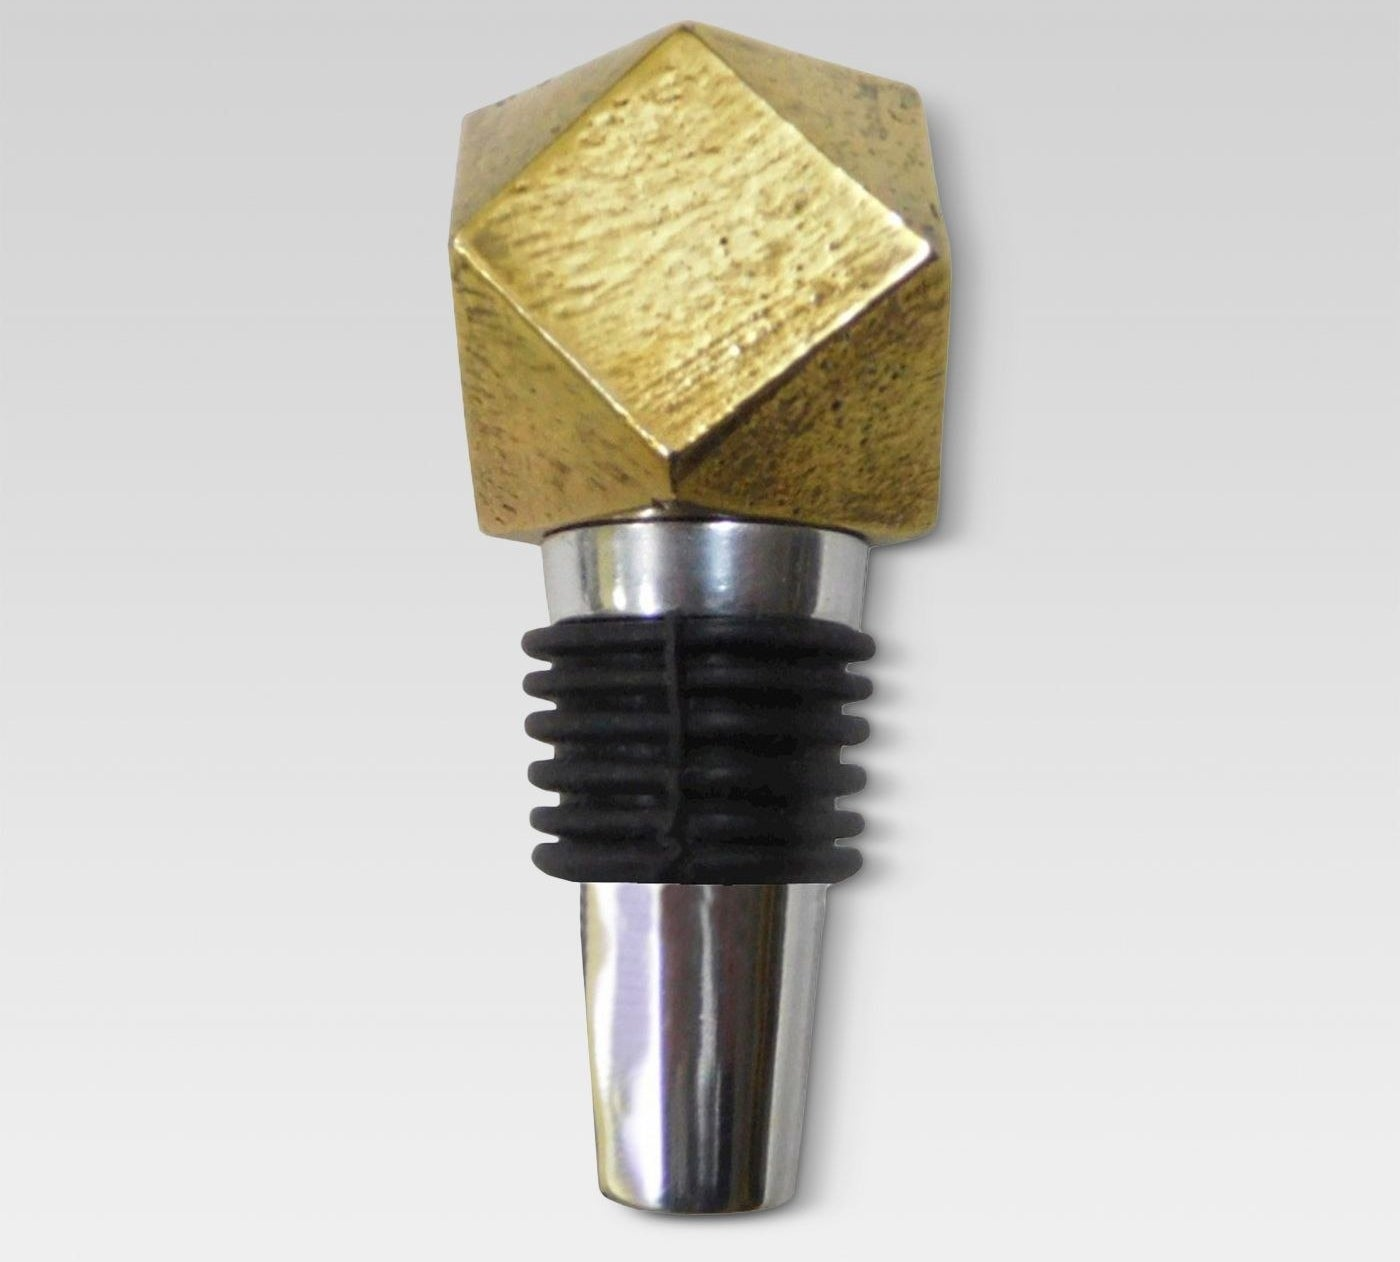 A metal bottle stopper with black rubber and a golden geometric top